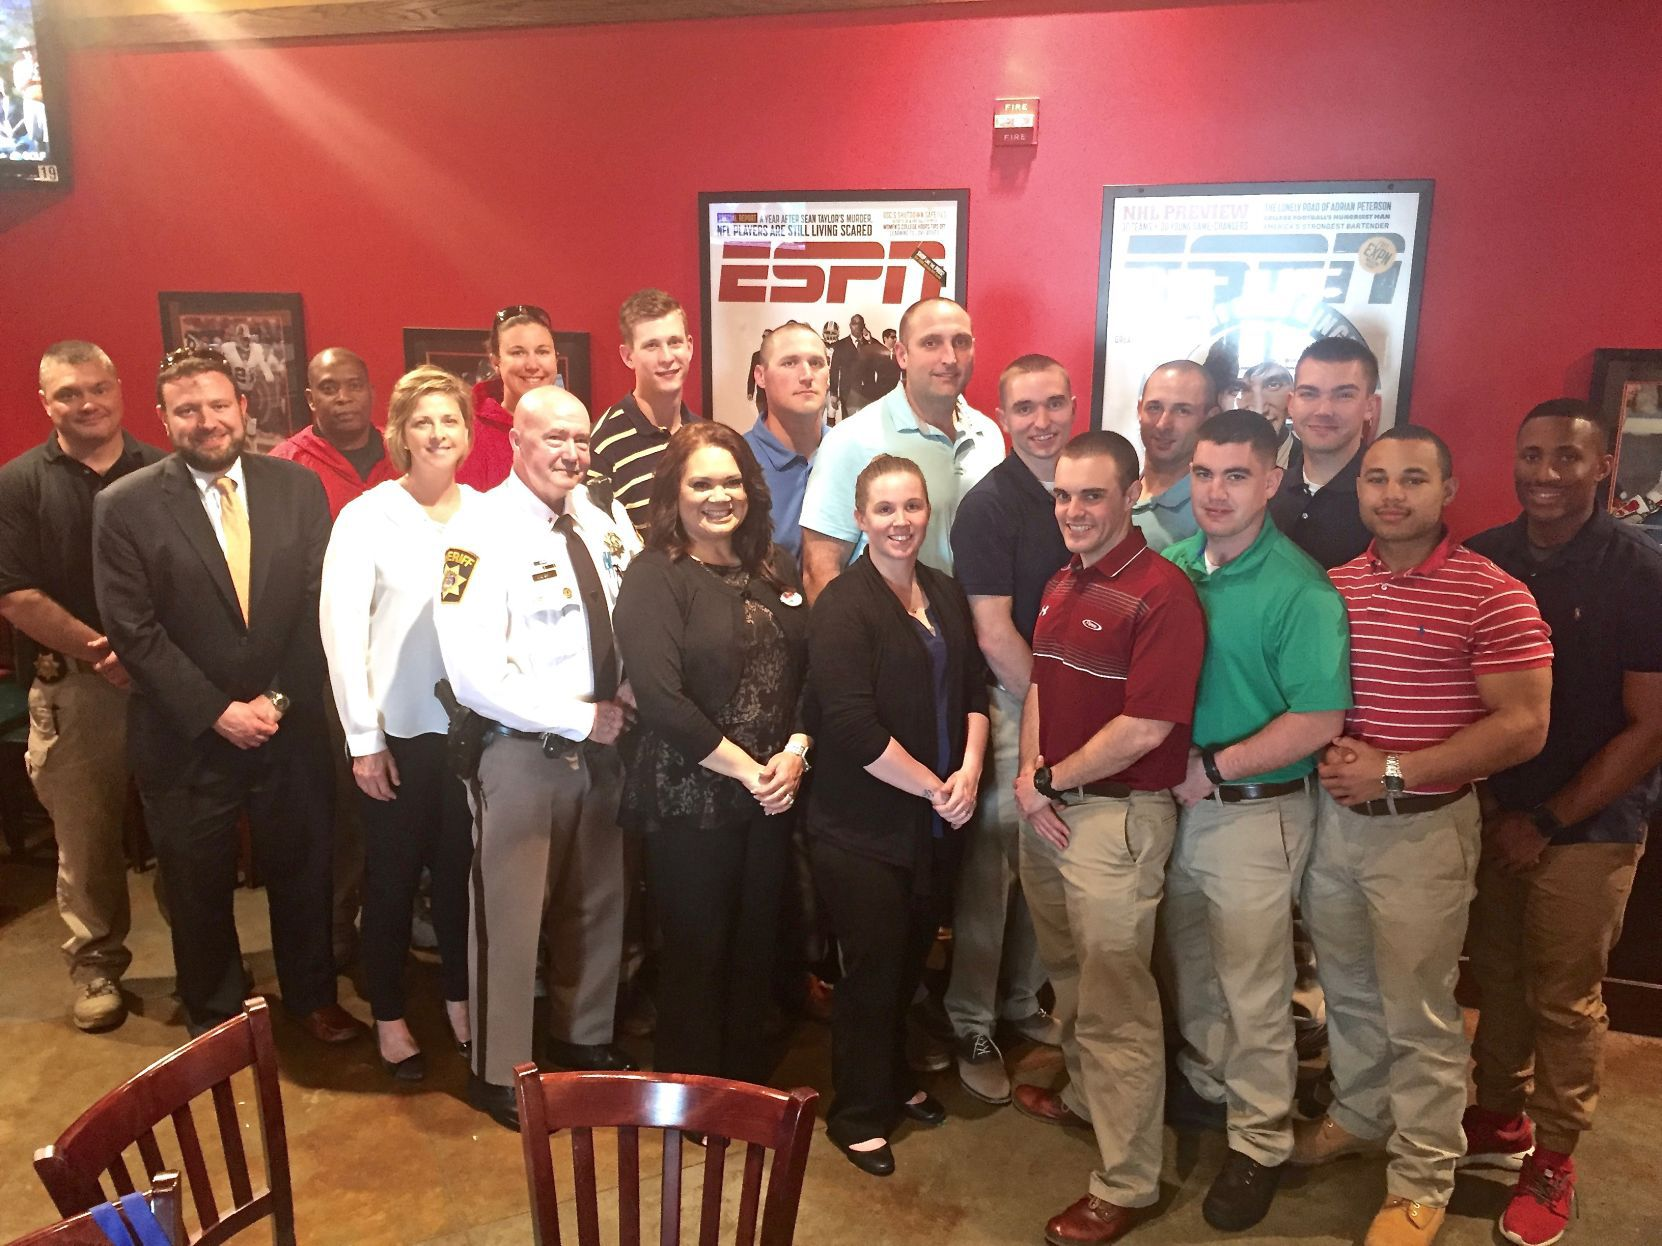 The Southern Maryland Criminal Justice Academy class